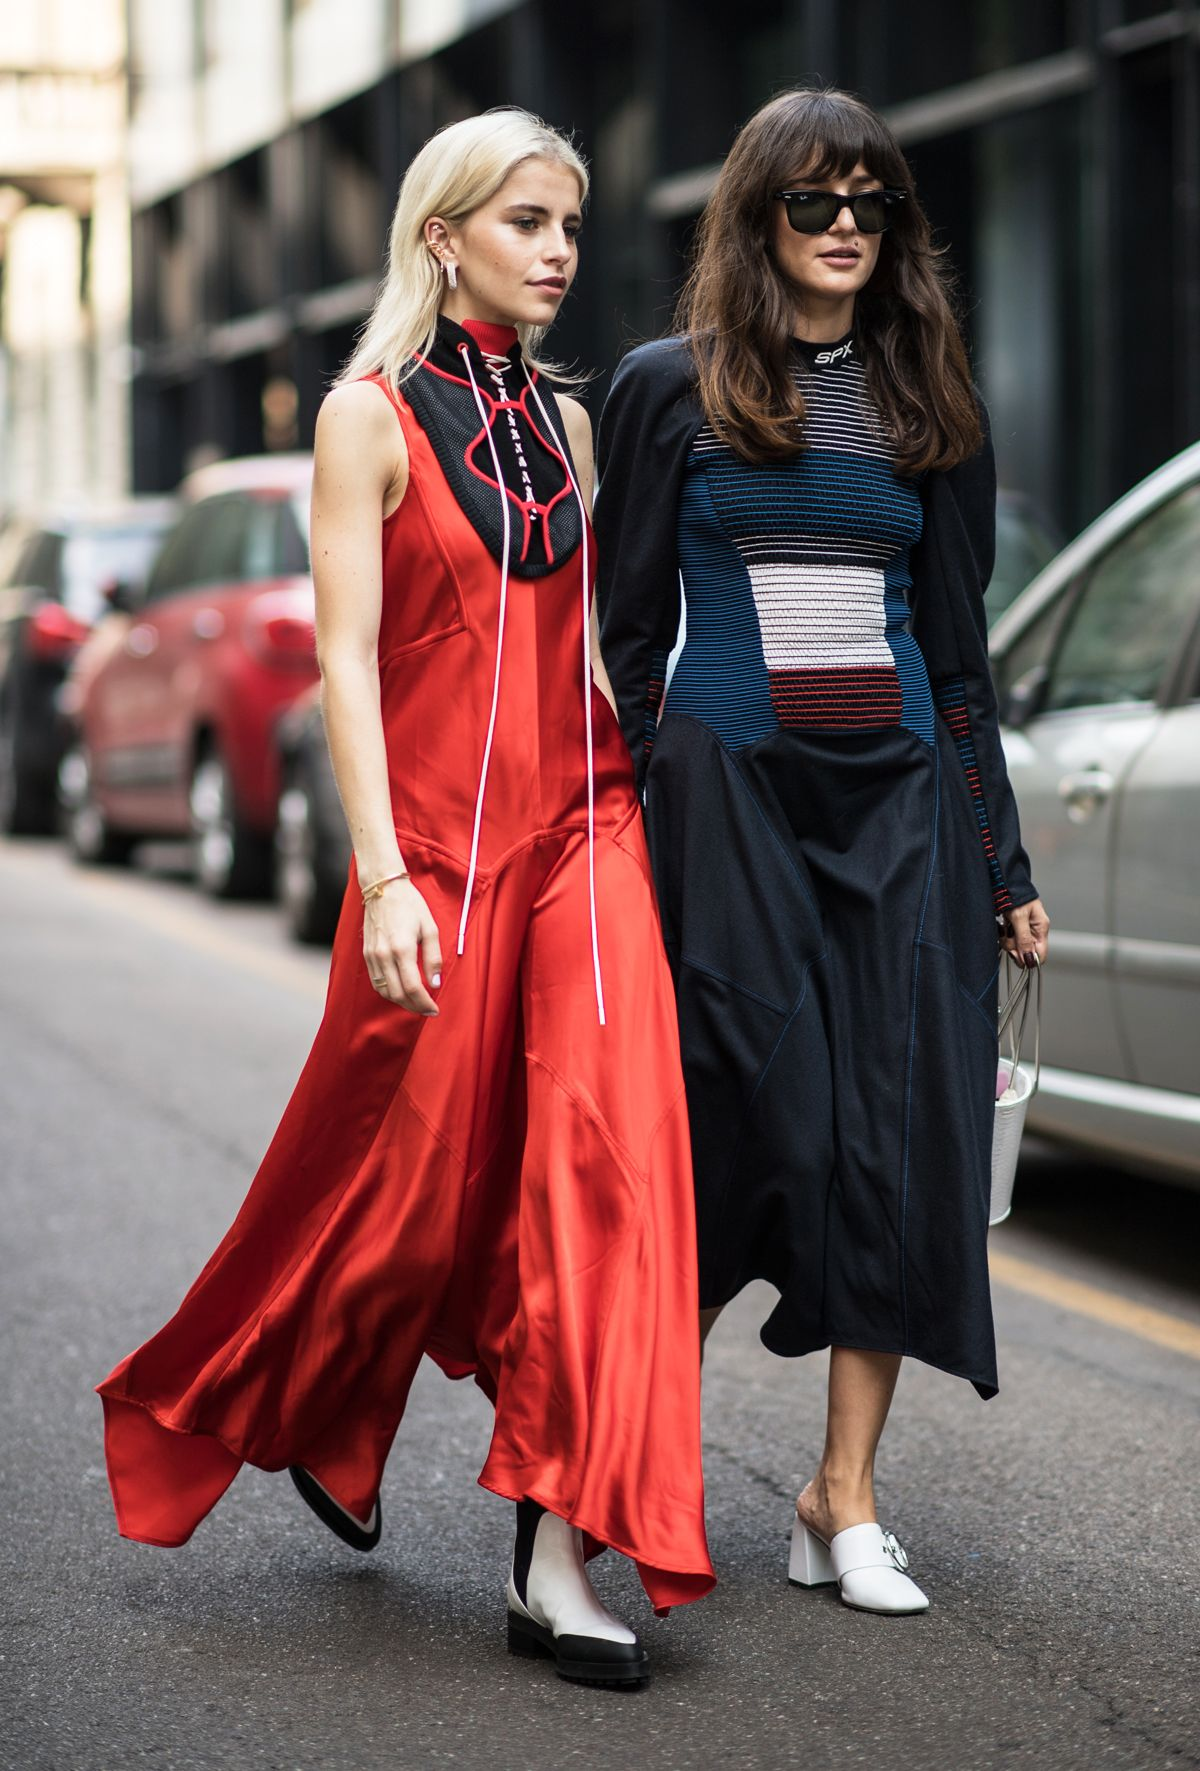 If You're Still Looking for the Perfect Midi Dress,We've Just Found 20